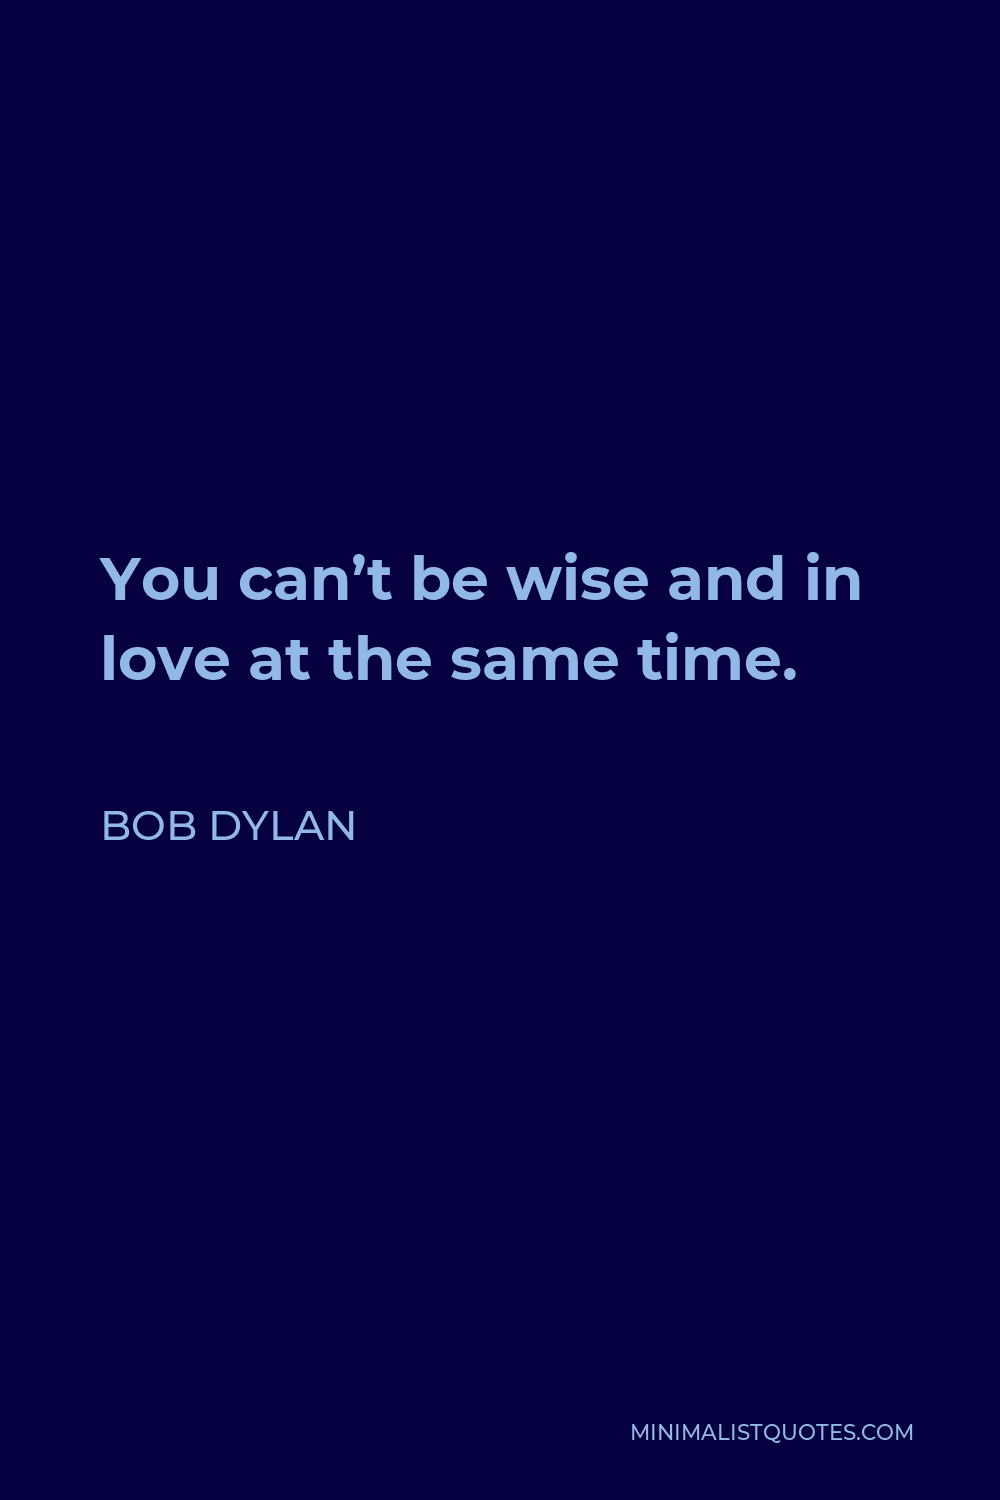 Bob Dylan Quote - You can't be wise and in love at the same time.